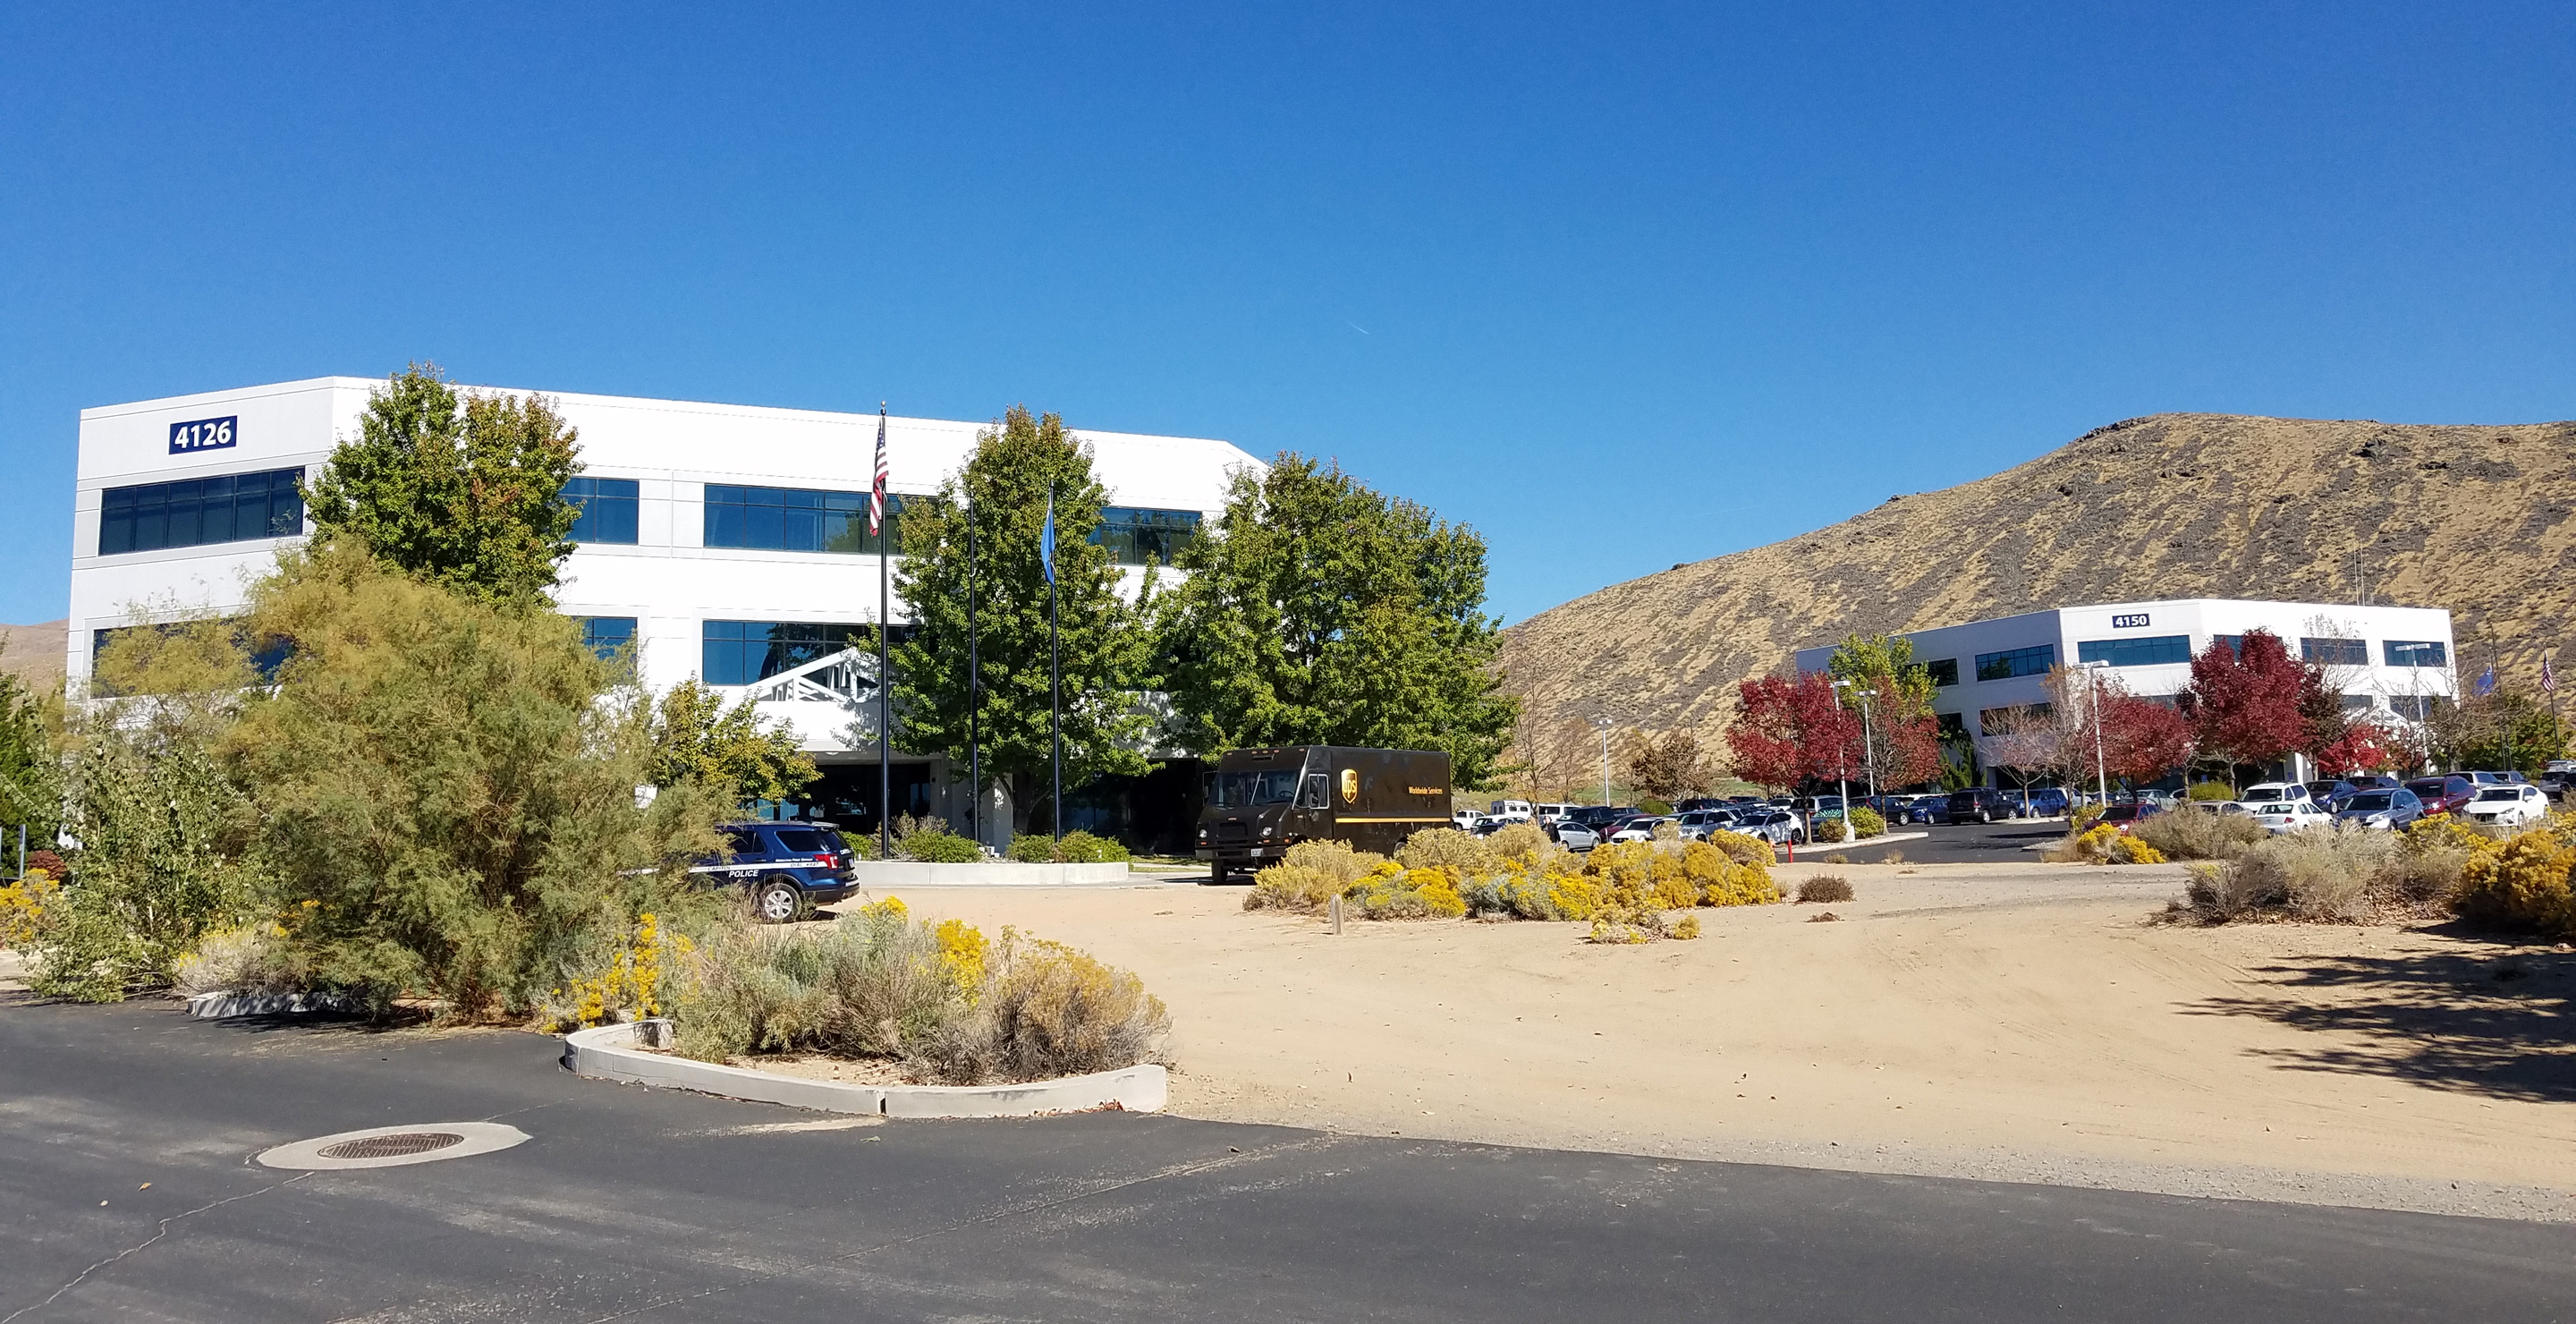 Nevada Department of Health and Human Services buildings in Carson City on Technology Way